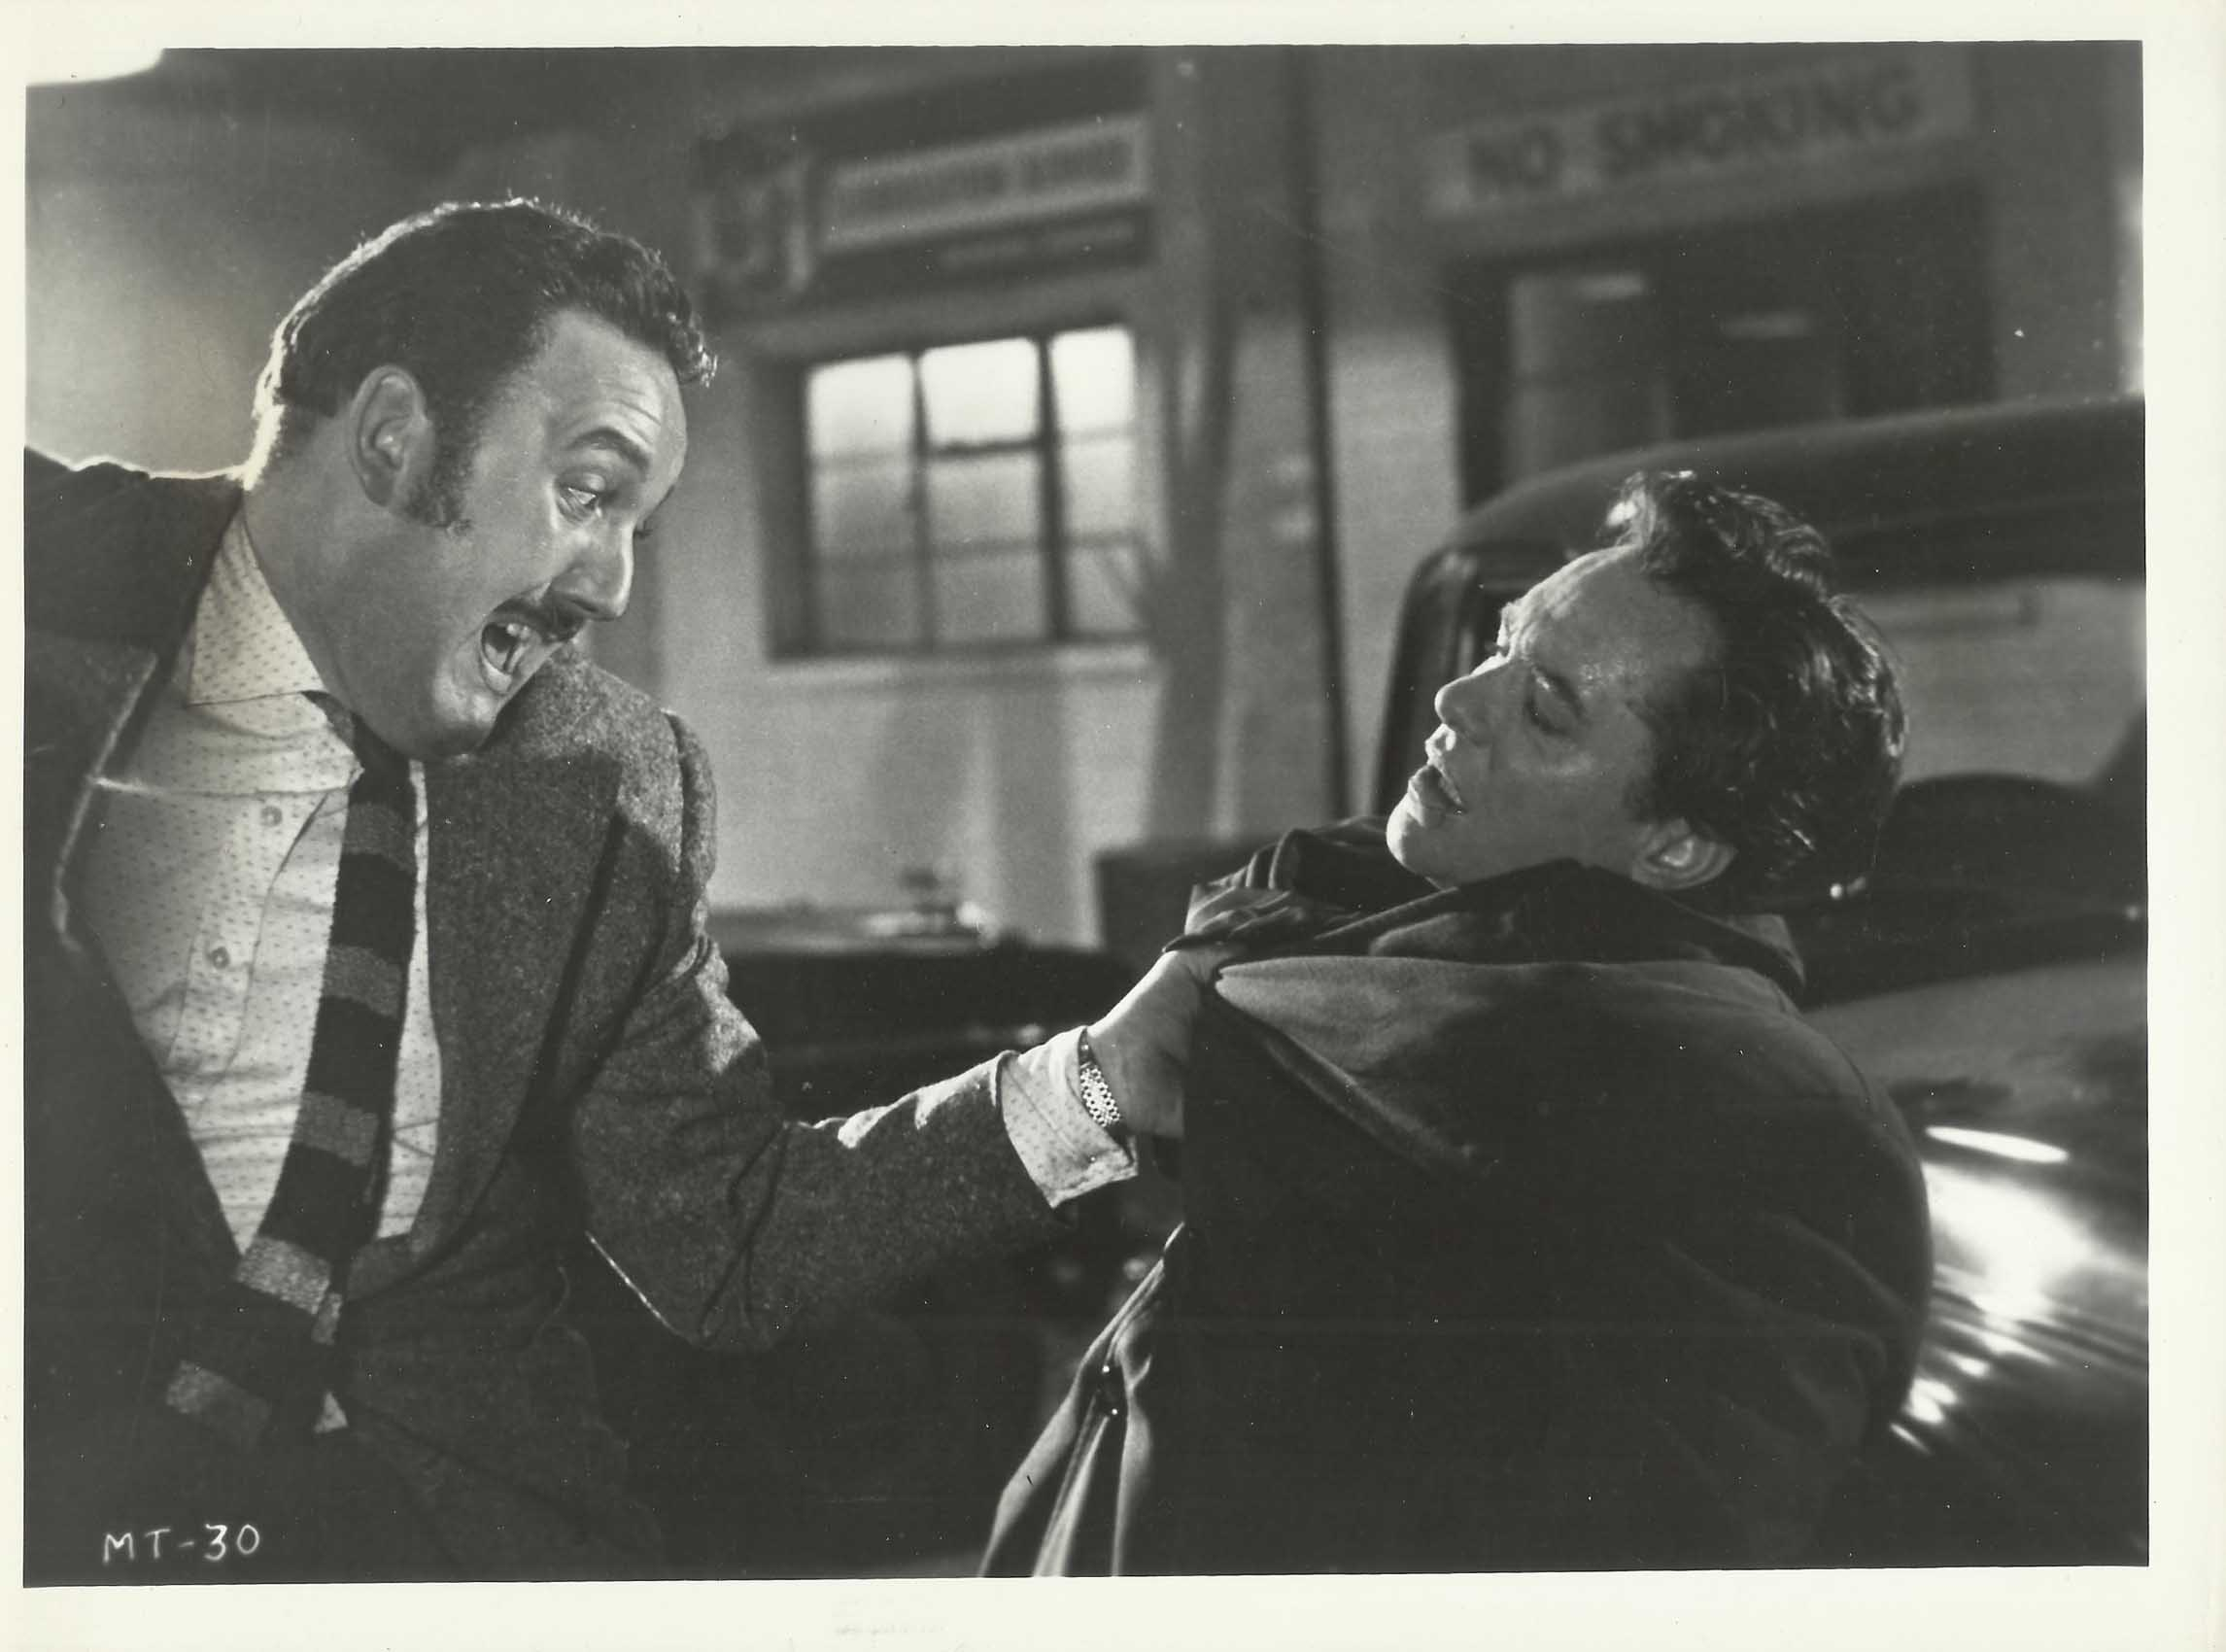 David Lodge and Richard Todd in Never Let Go (1960)